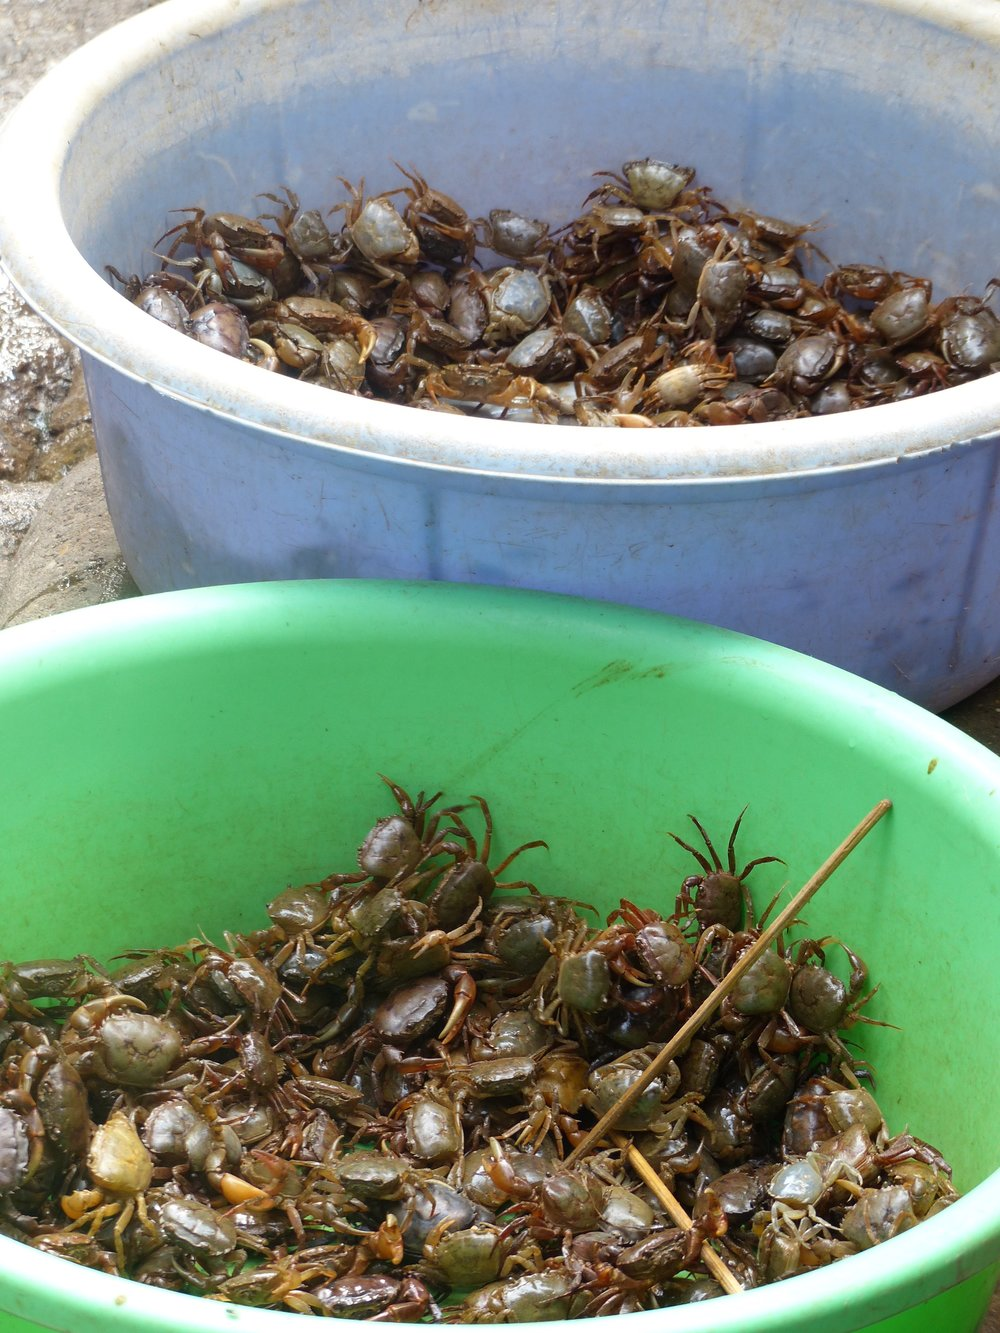 How are these river crabs eaten?